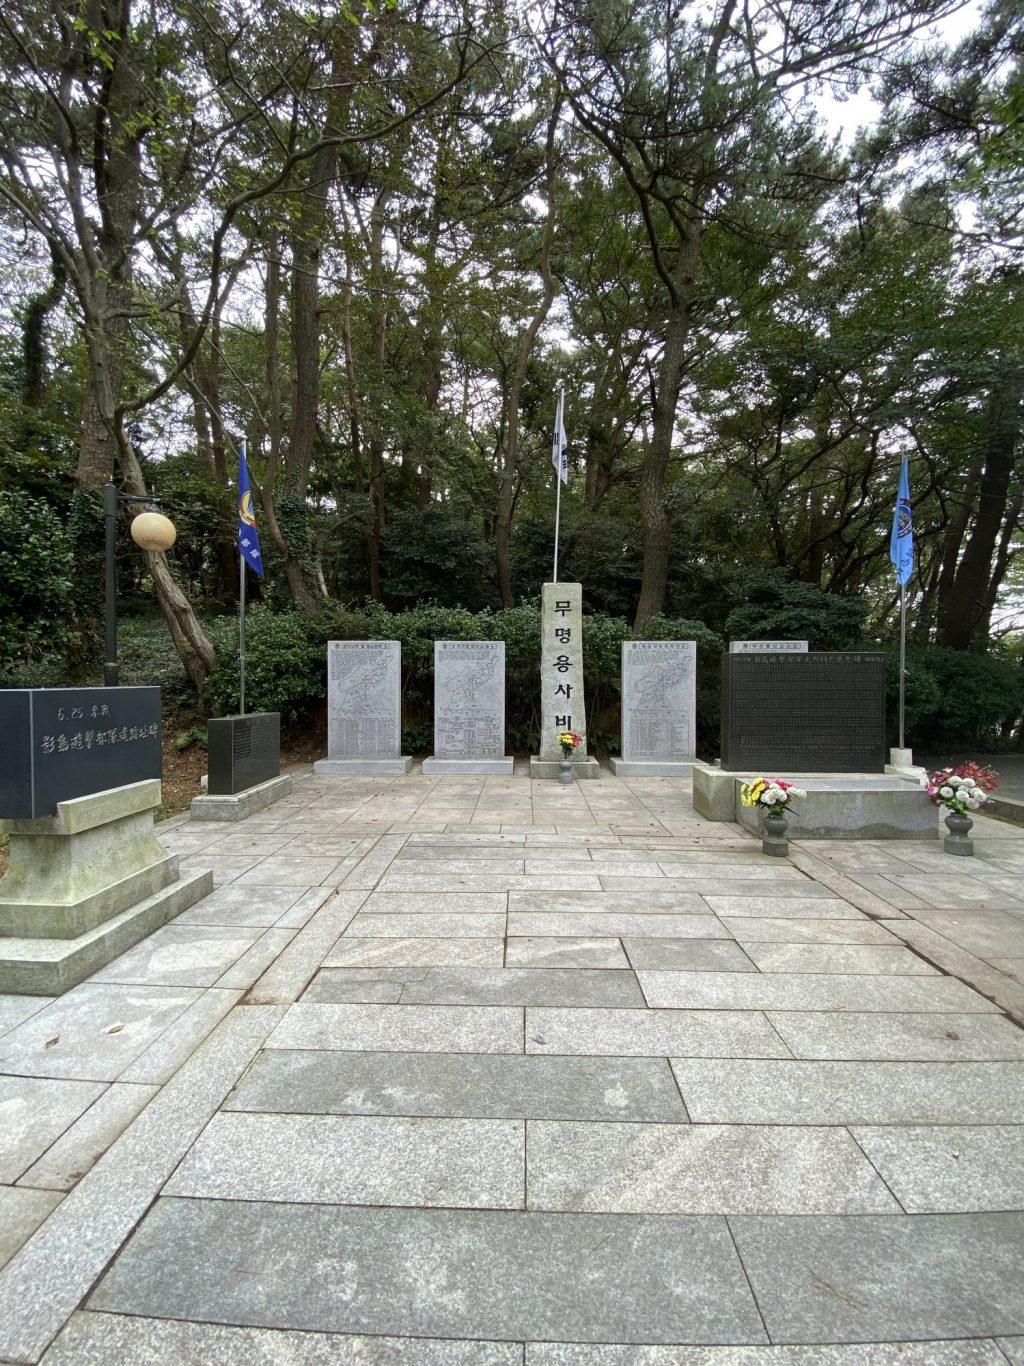 "The tallest monument in the center reads ""Mu-myeong-yong-sa-bi,"" which means unknown soldier at Taejongdae Geopark on Oct. 4. After visiting this memorial, I grew a deeper respect for the soldiers who fought for South Korea with tenacity."